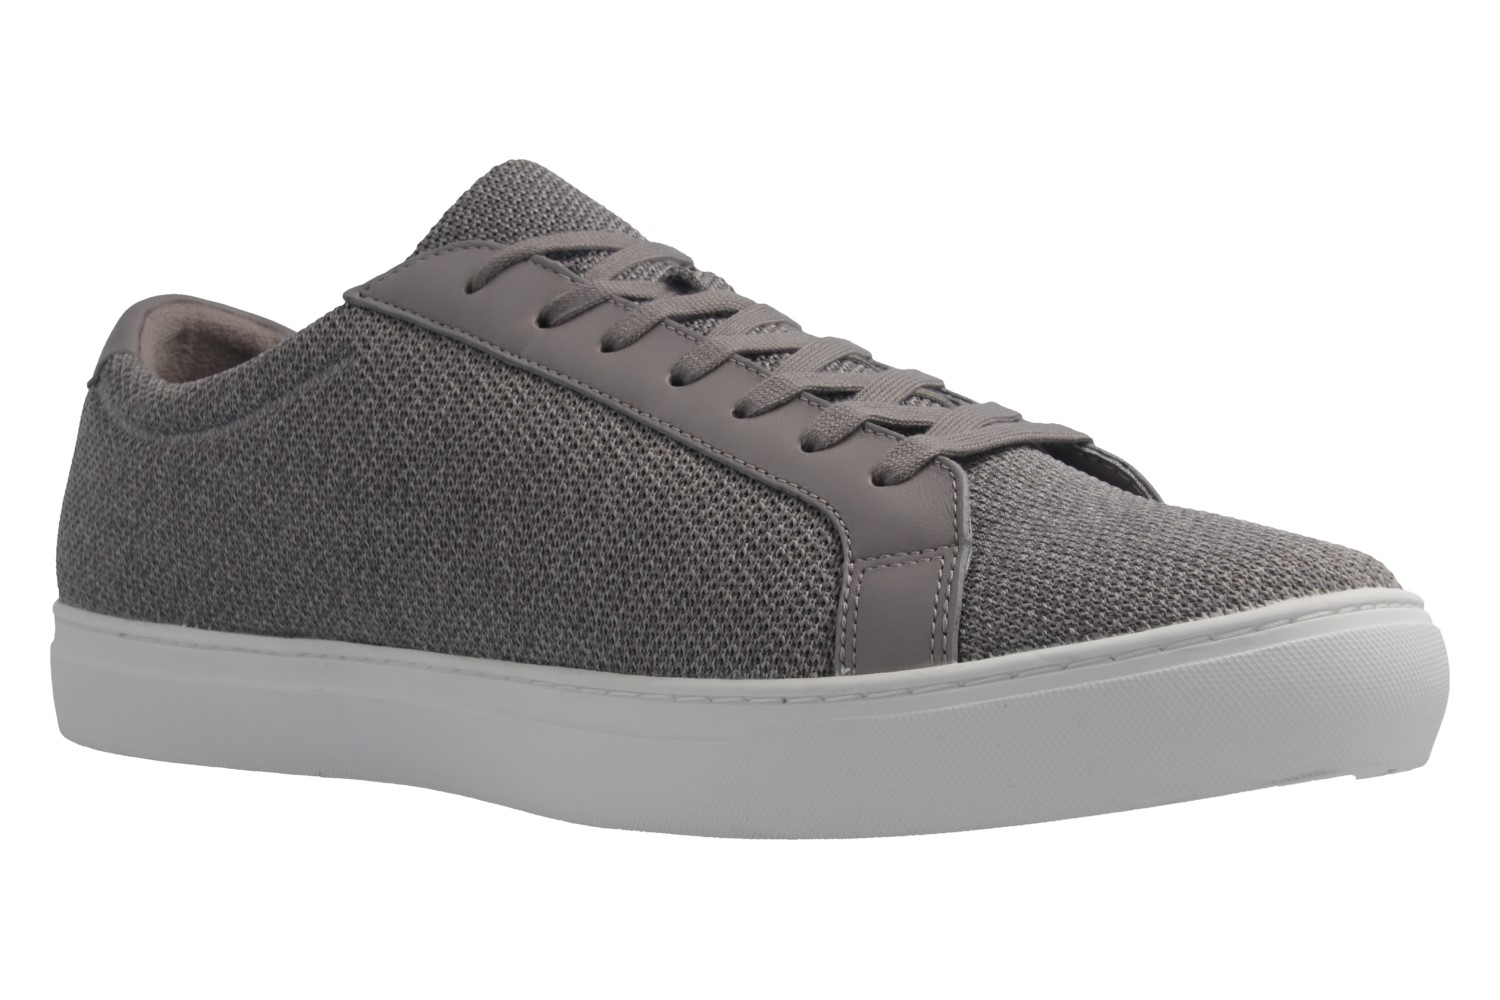 lacoste herren sneaker 317 grau schuhe in bergr en herrenschuhe in bergr en. Black Bedroom Furniture Sets. Home Design Ideas